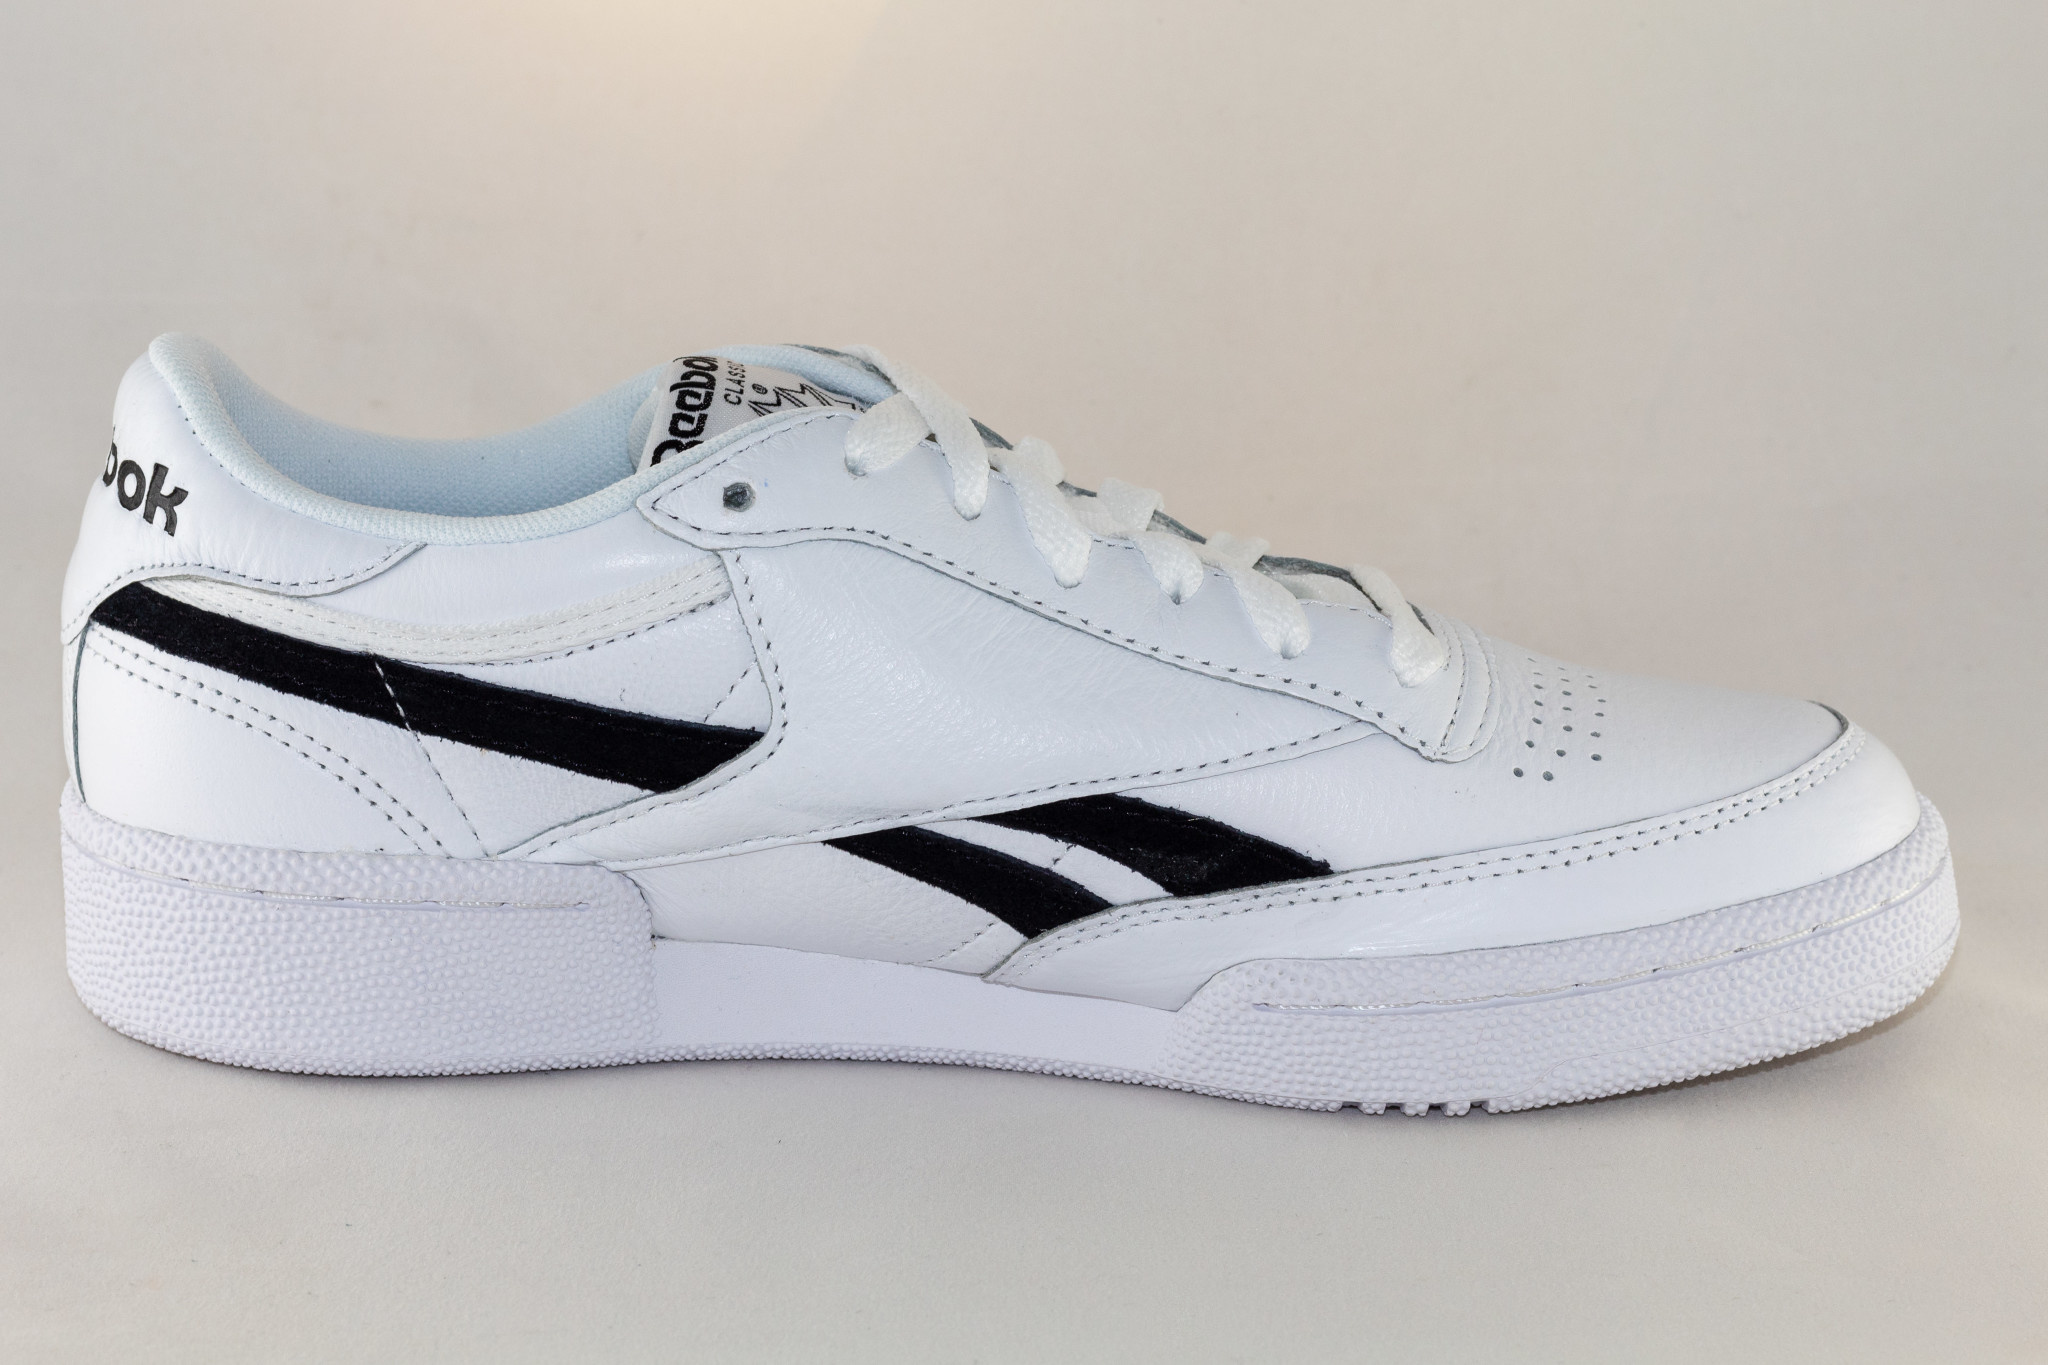 REEBOK REVENGE PLUS MU White/ Black/ None